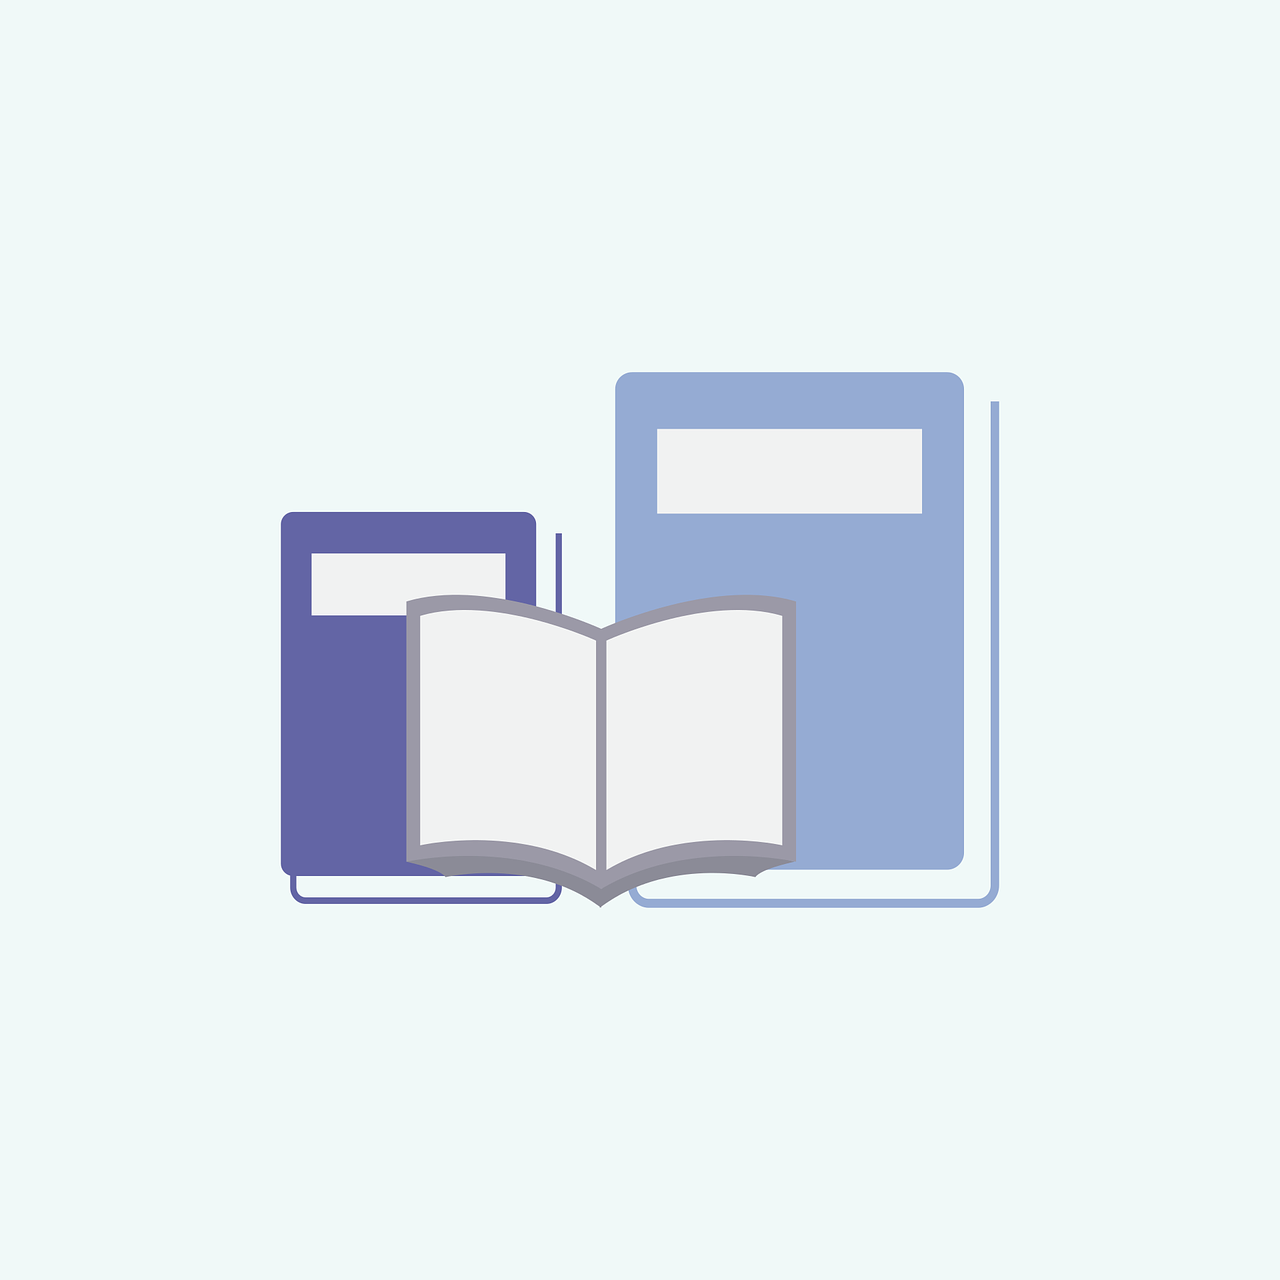 books-1831917_1280.png